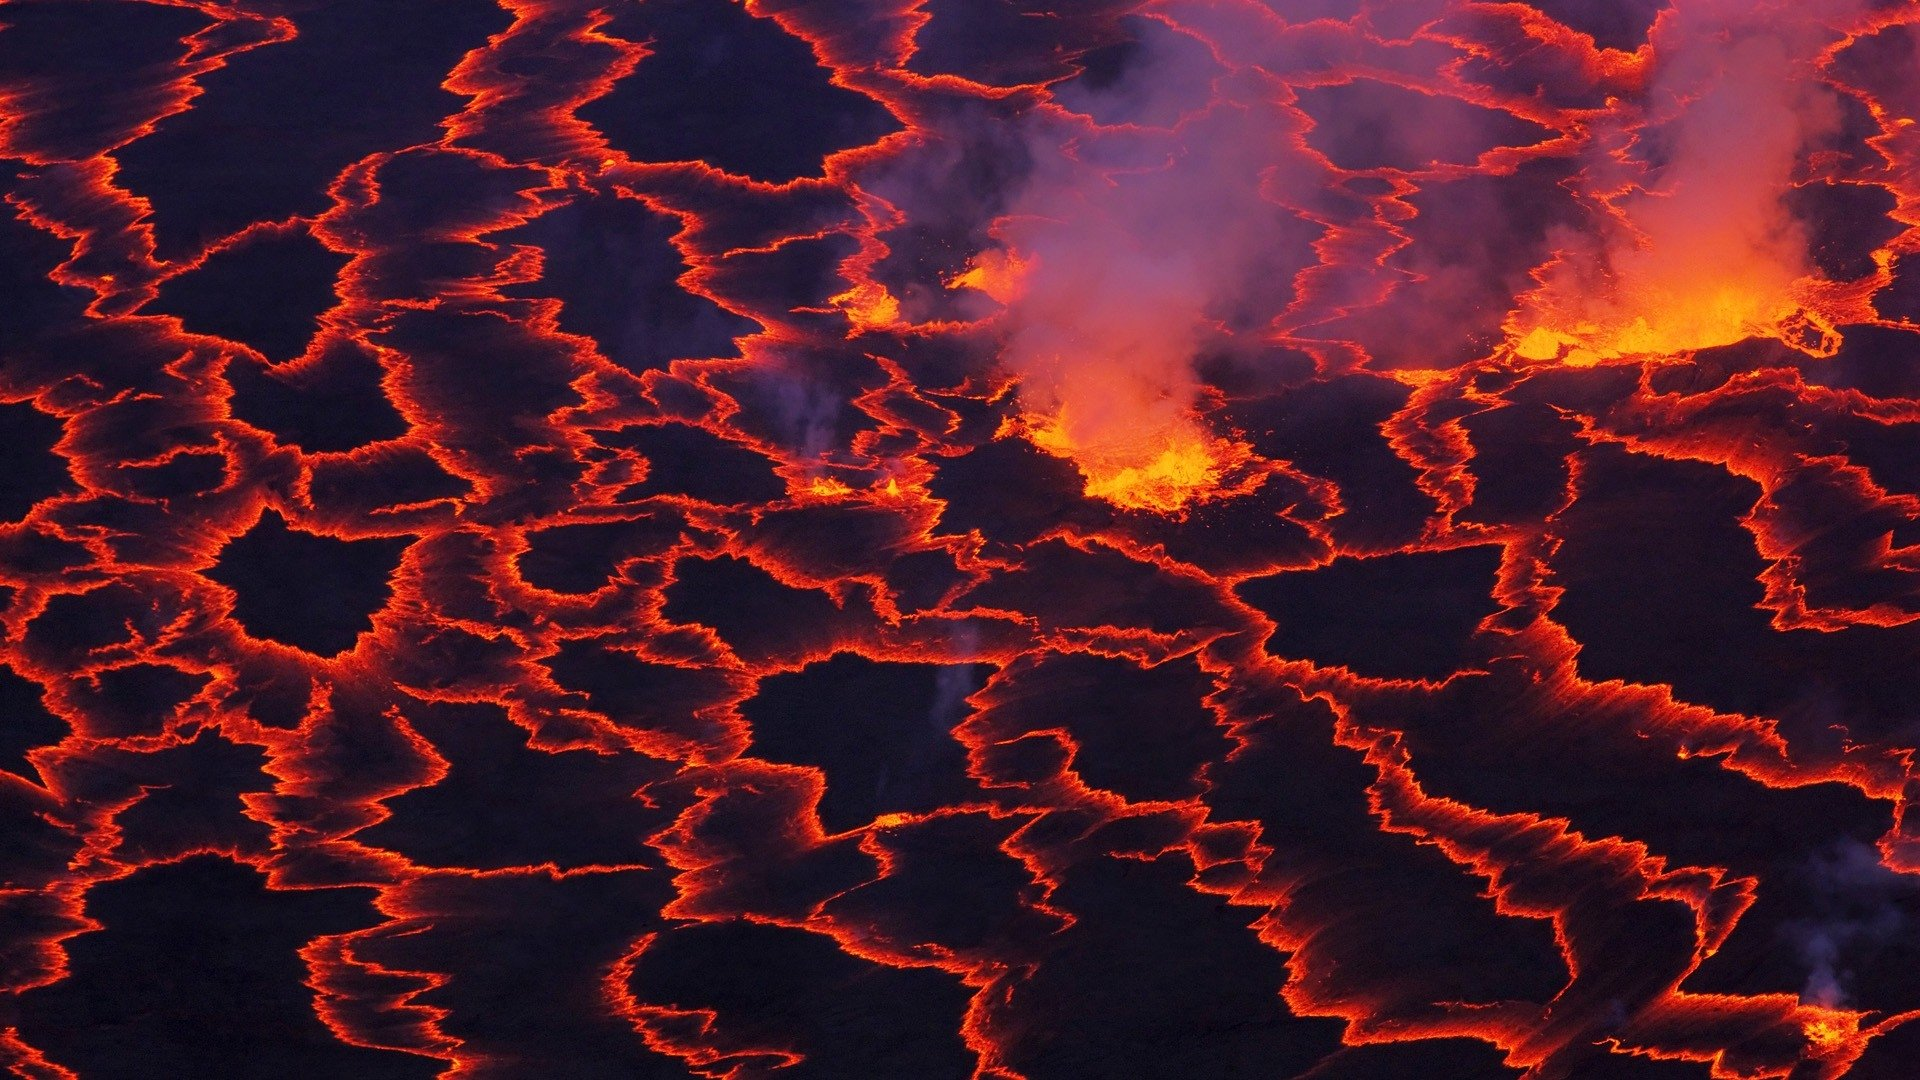 Earth - Volcano  Lava Fire Hell Wallpaper